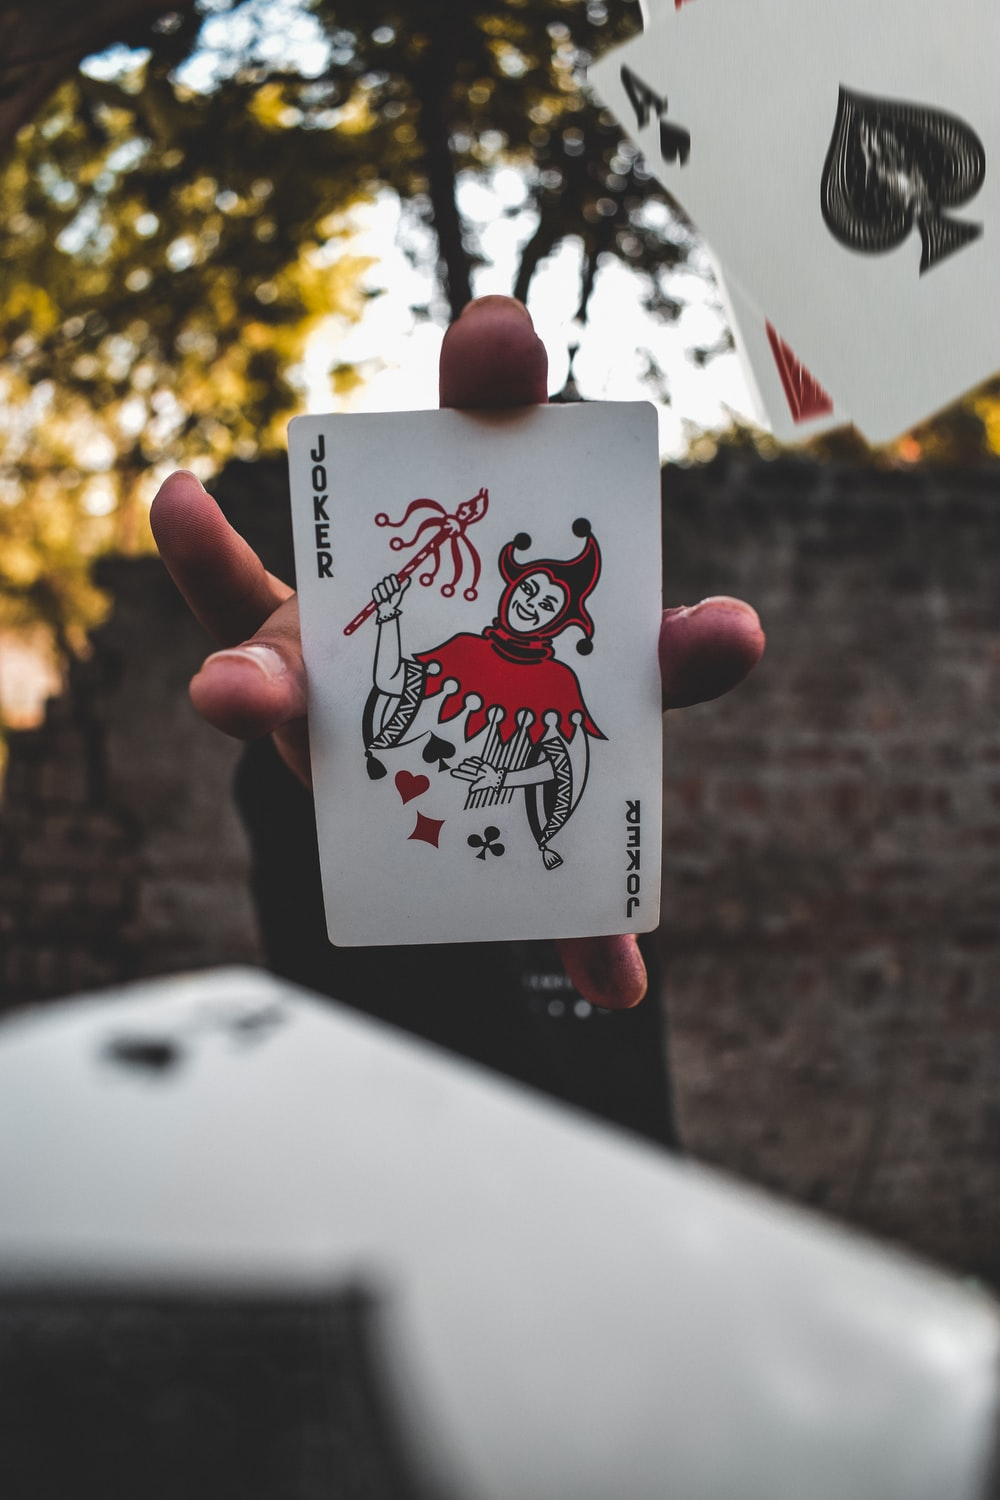 joker playing card on persons hand